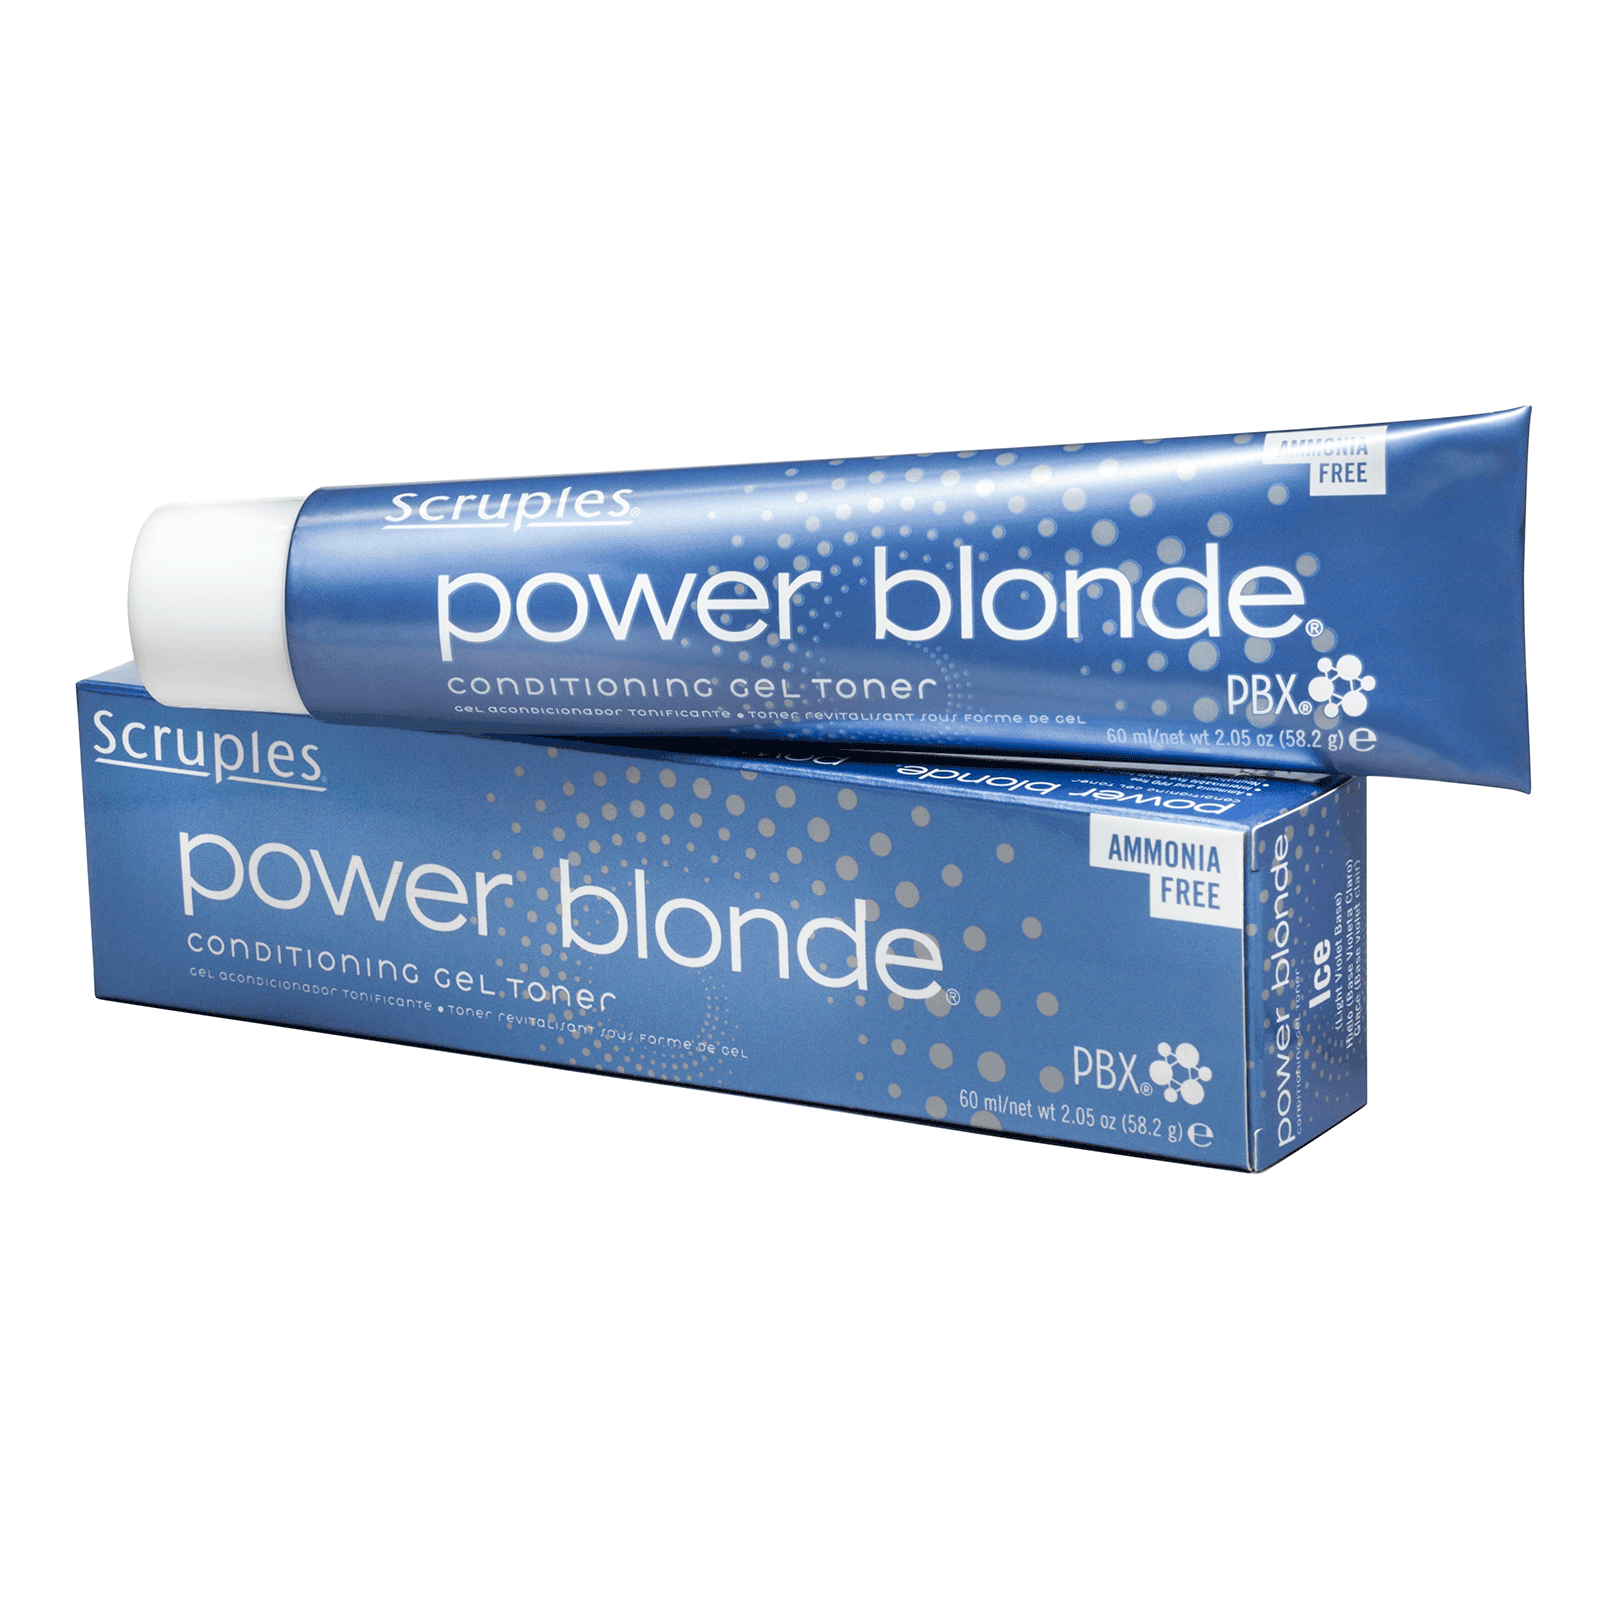 Power Blonde Conditioning Gel Toner - Mist